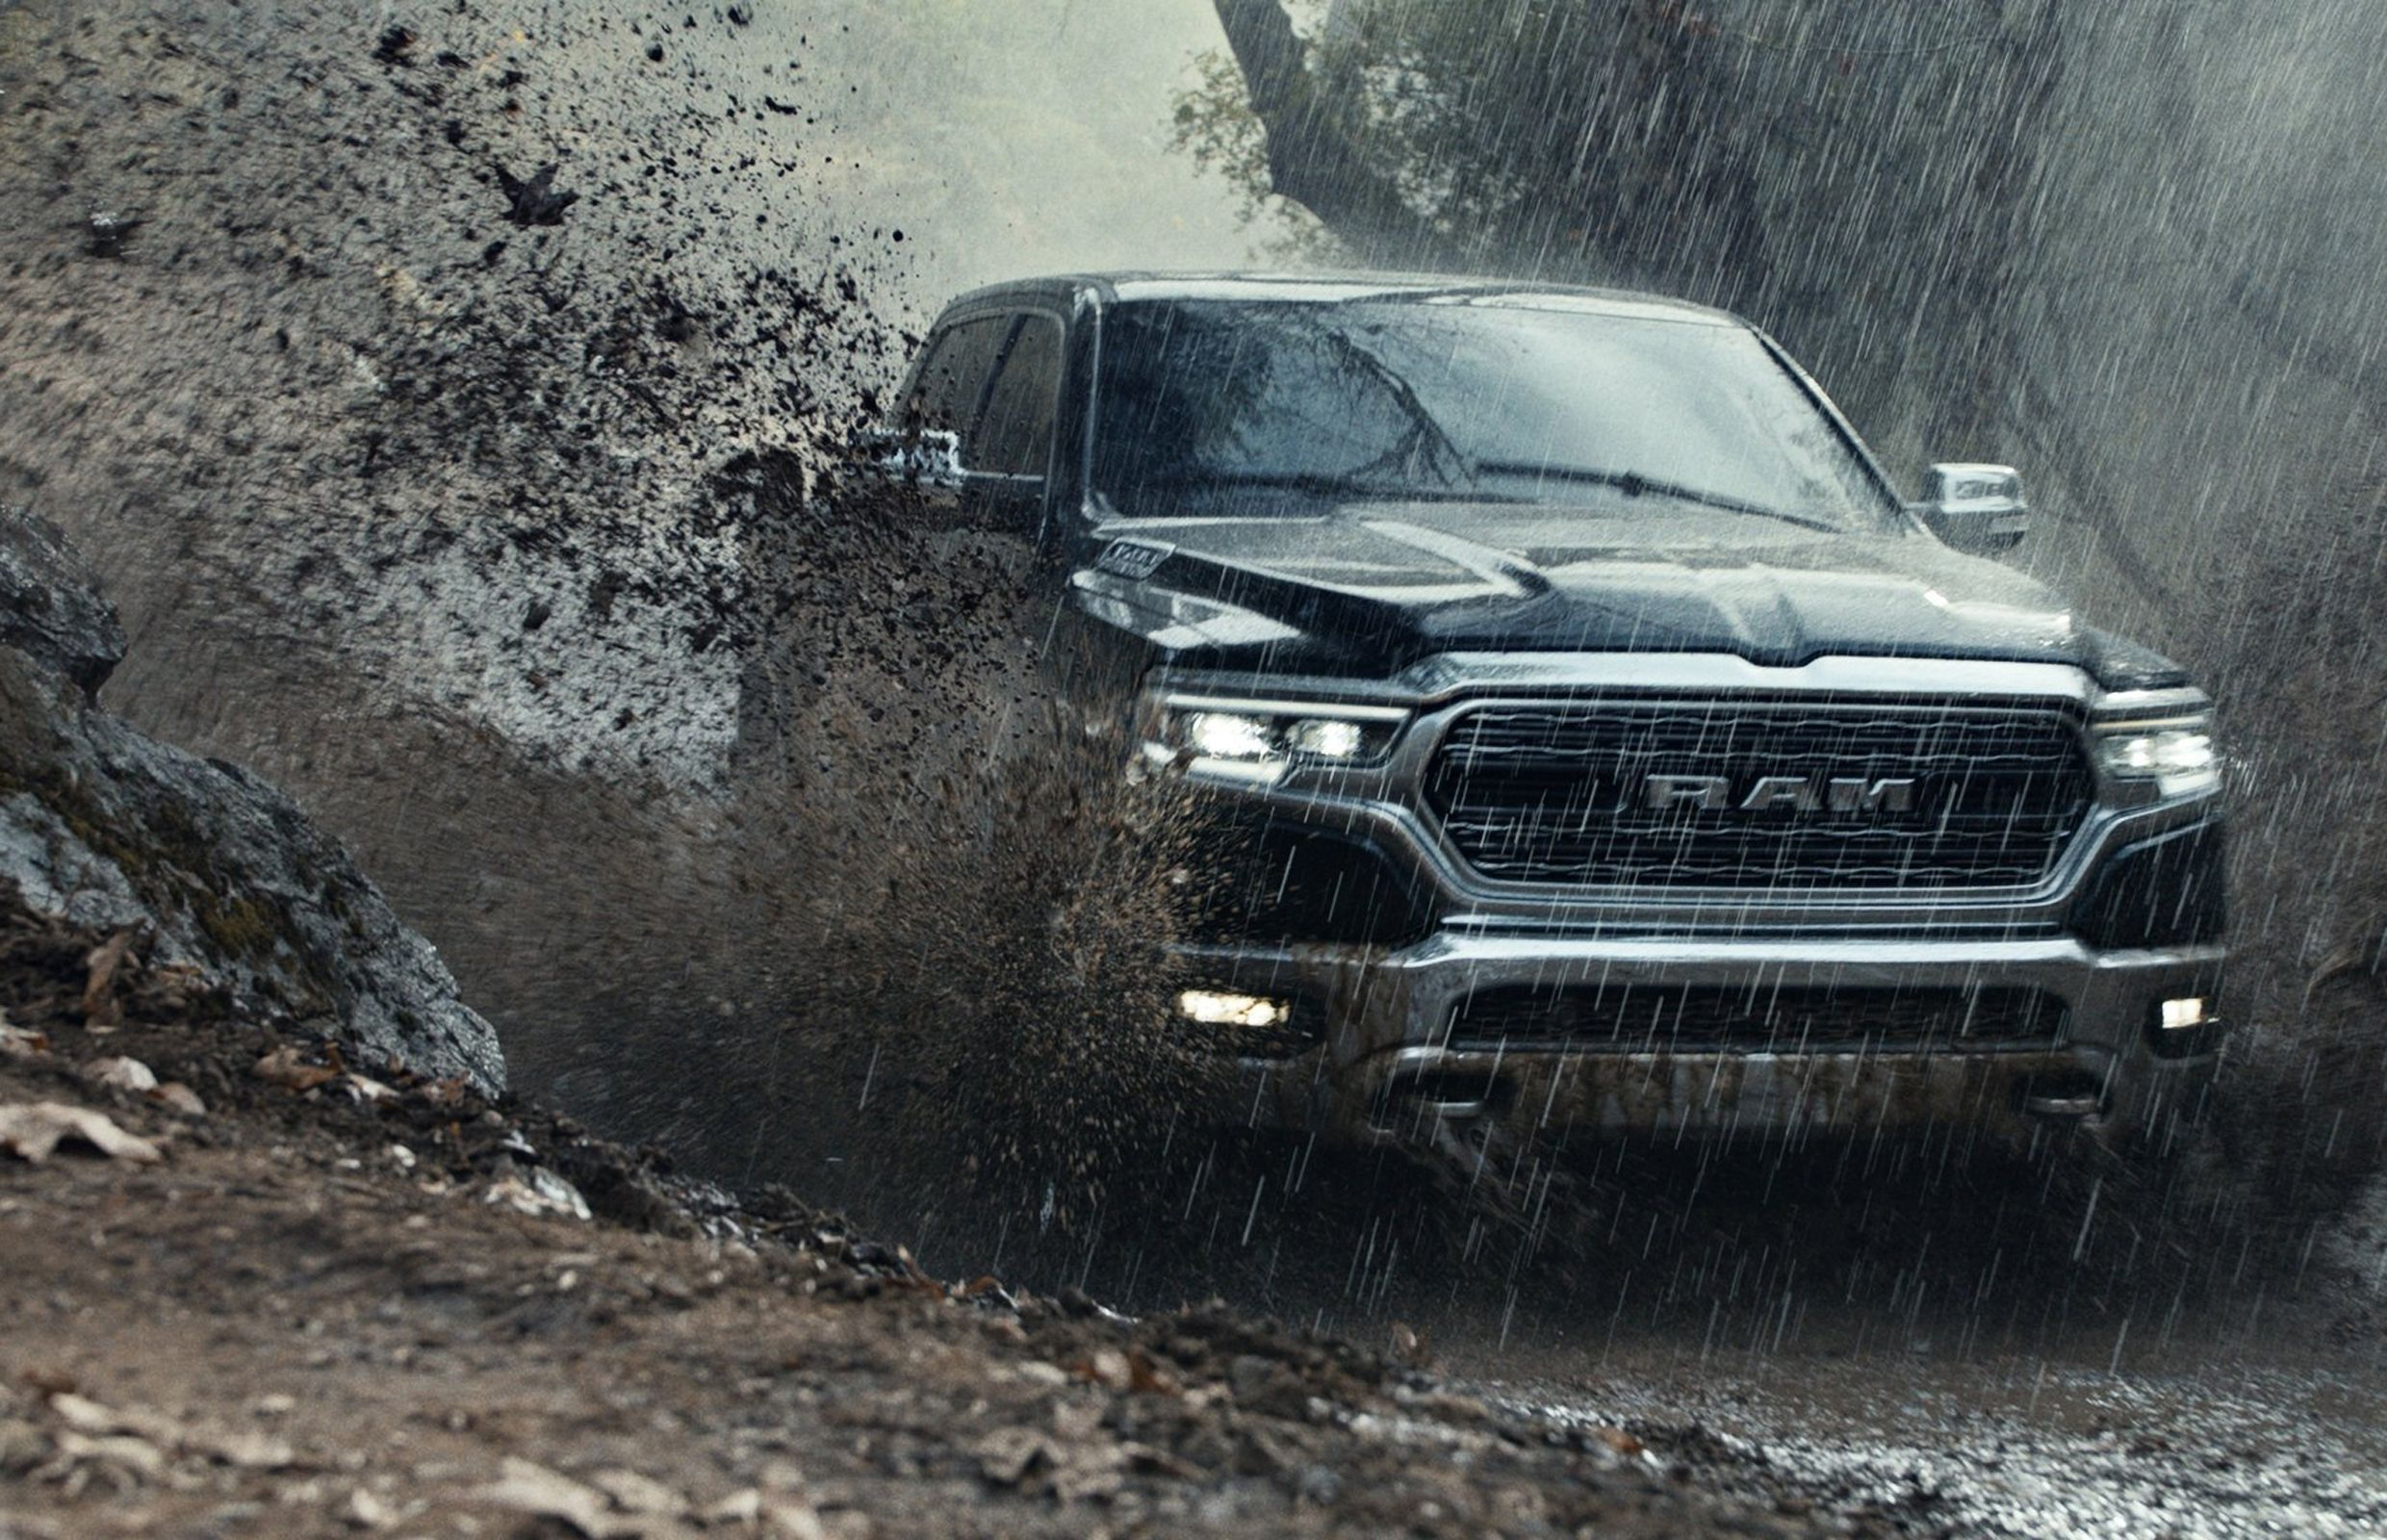 A 2019 Ram 1500 in a Super Bowl 52 ad